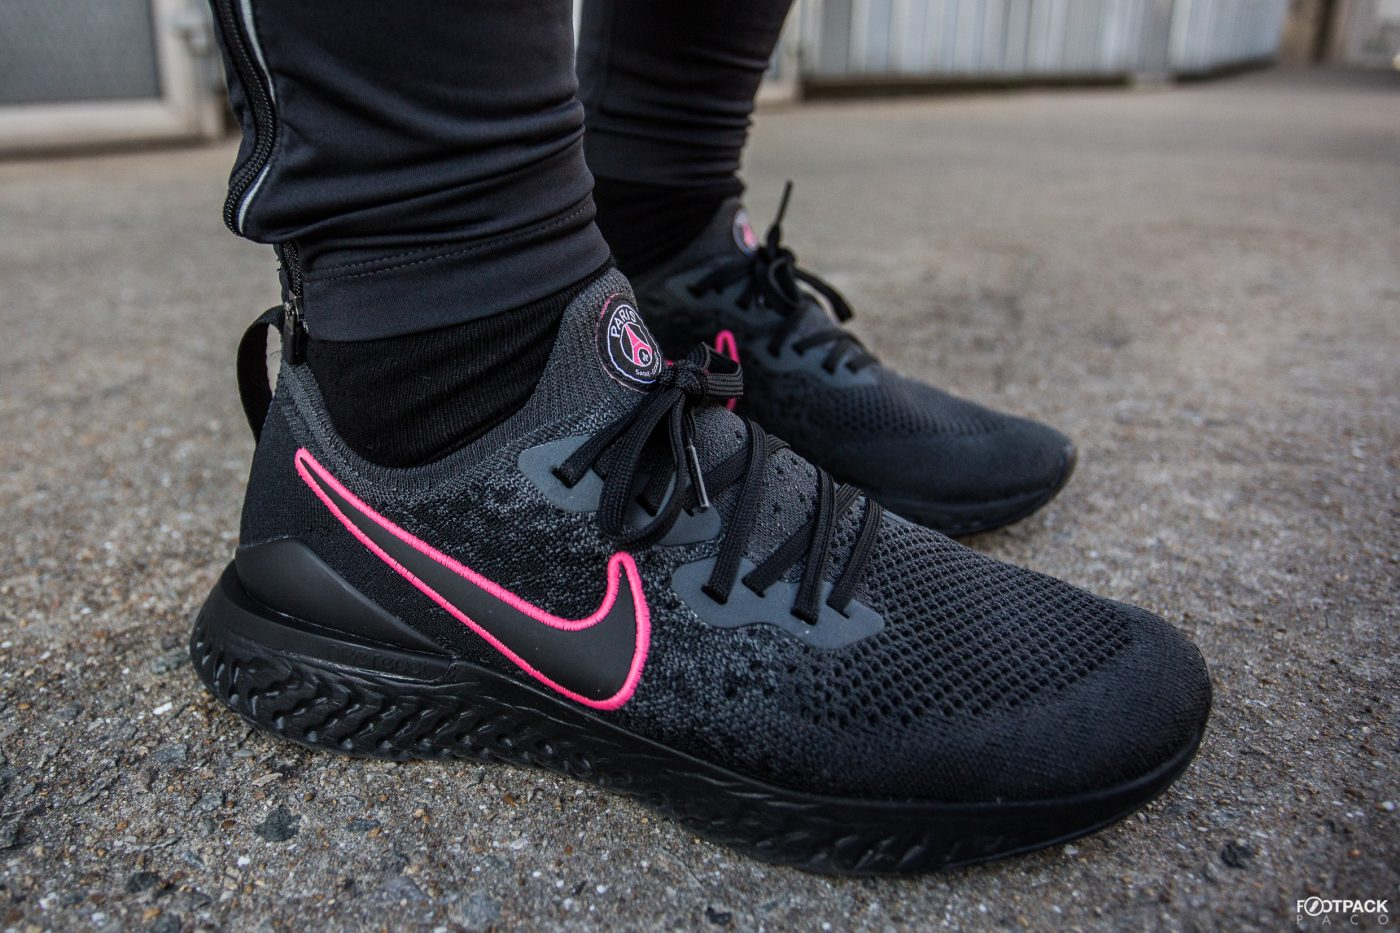 nike-epic-react-flyknit-paris-saint-germain-11